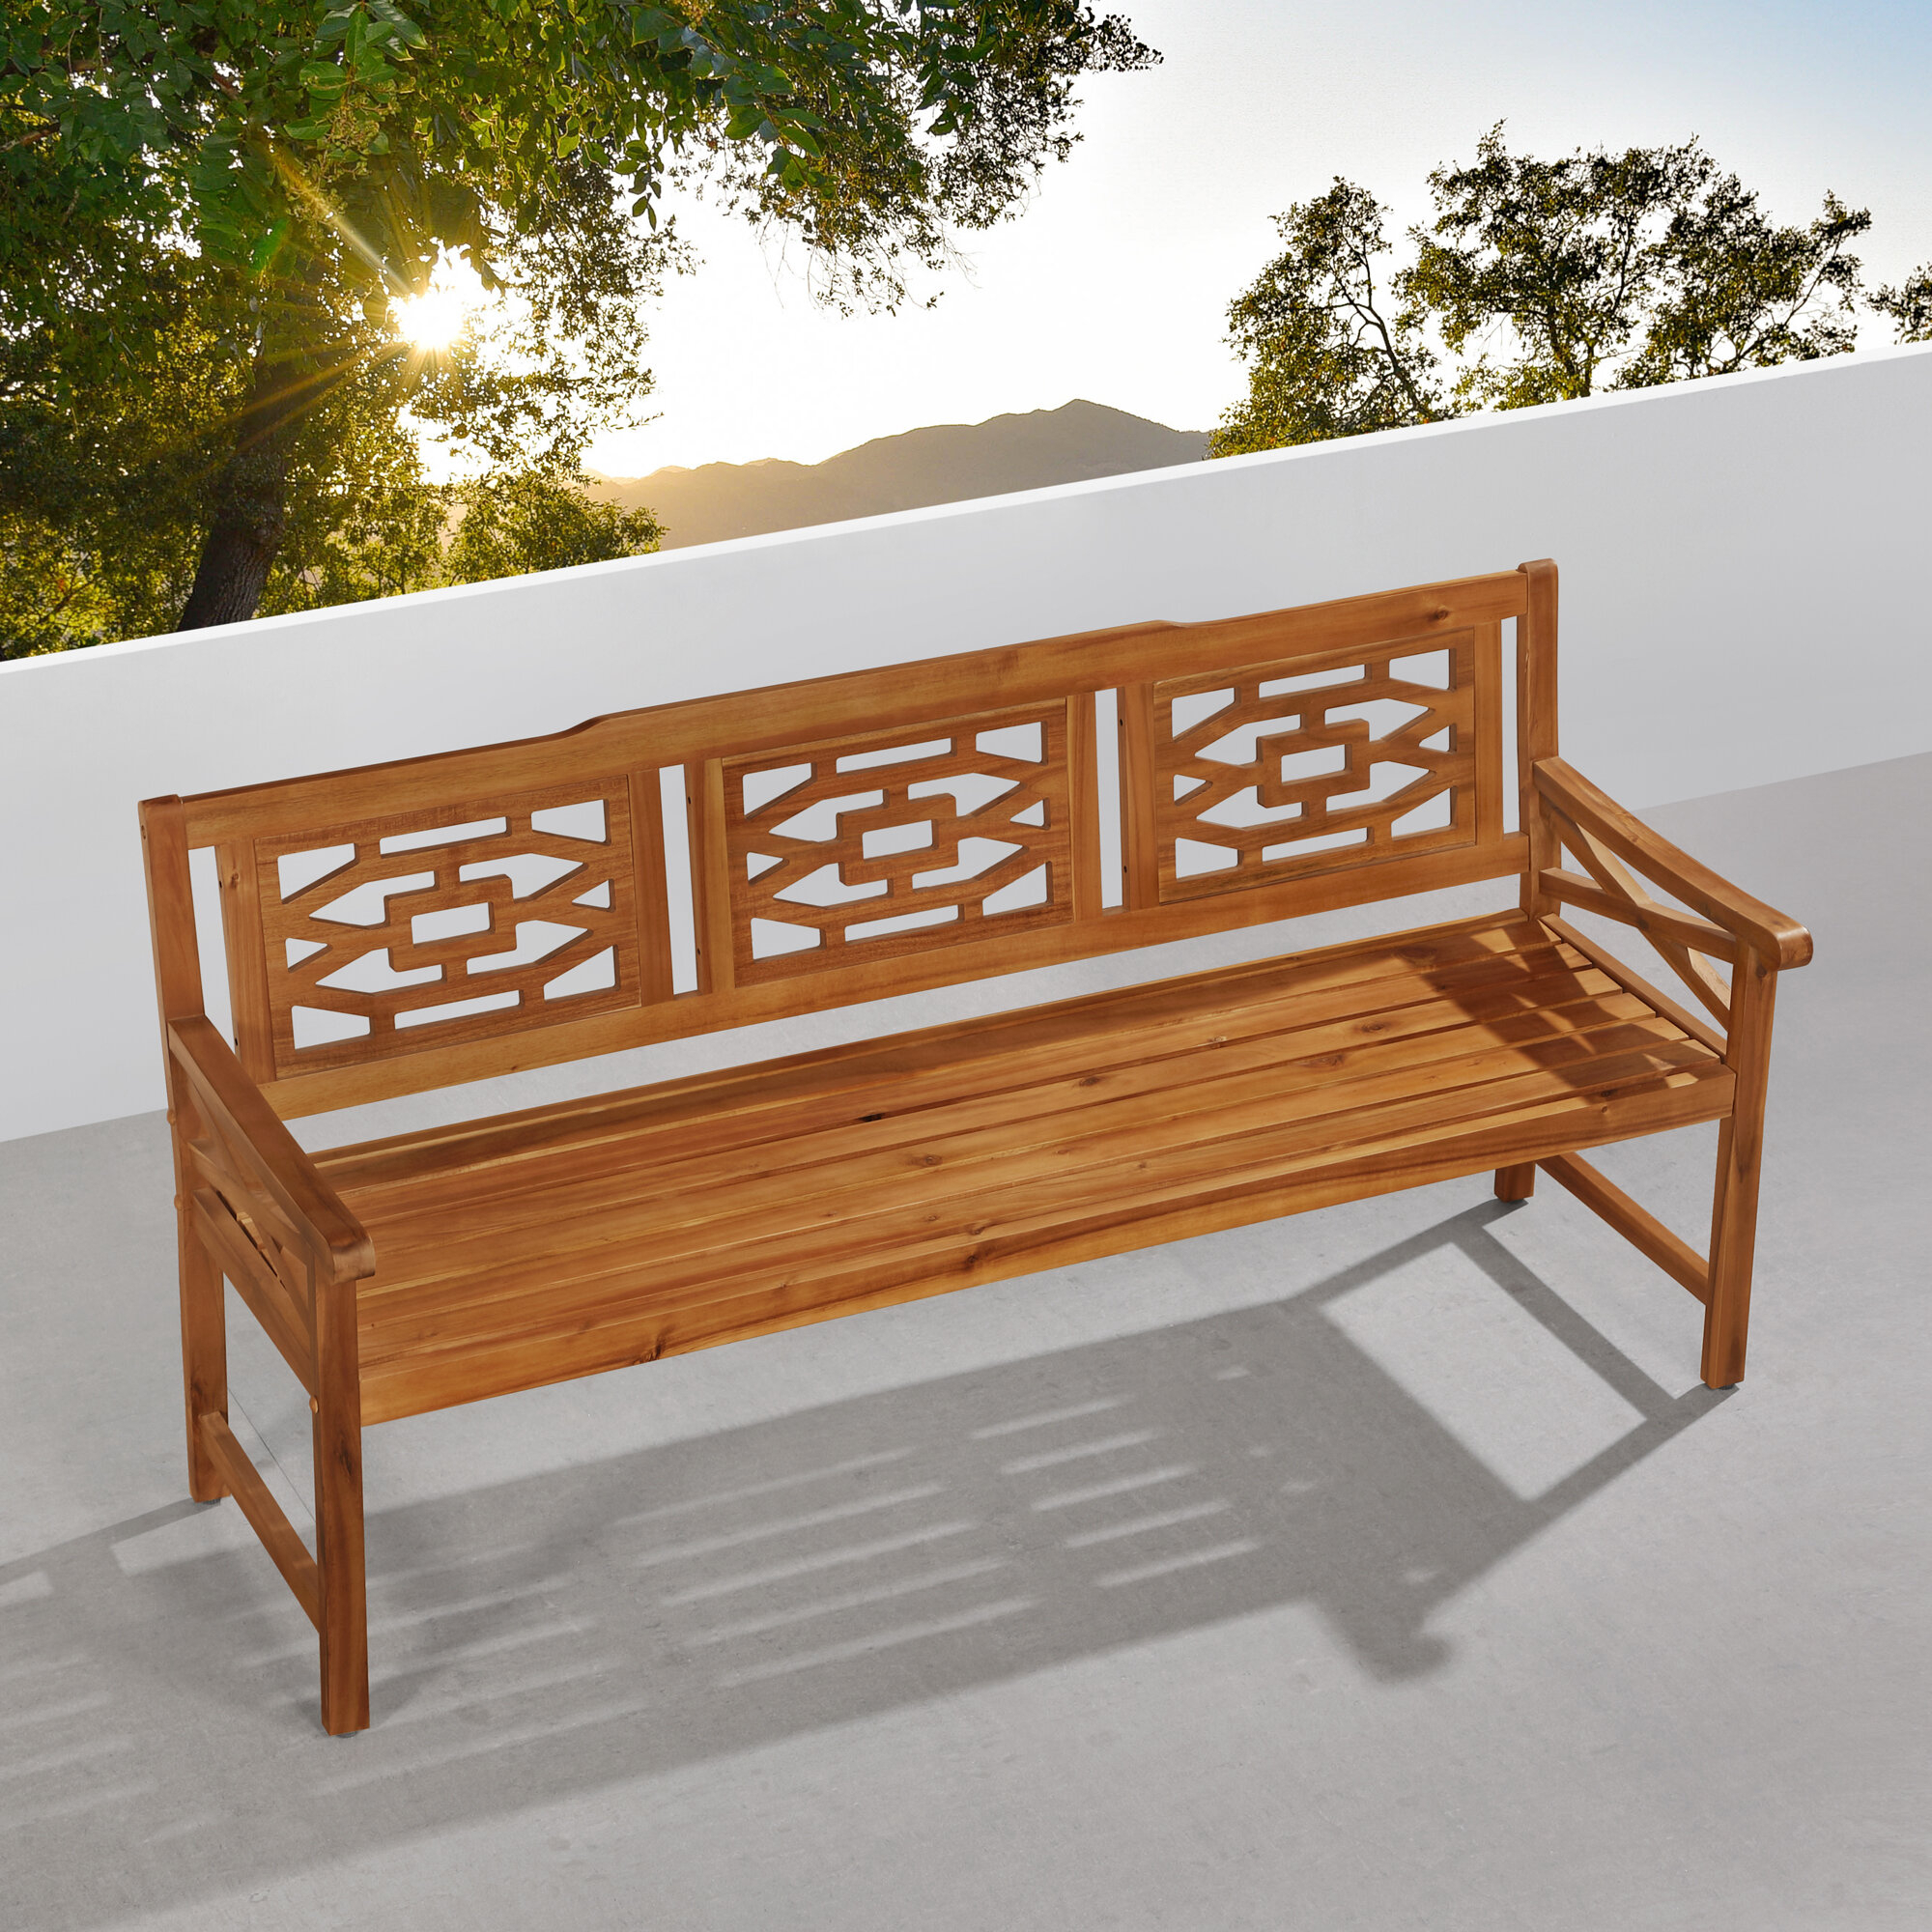 Malay Wooden Garden Bench Pertaining To Amabel Wooden Garden Benches (View 25 of 25)